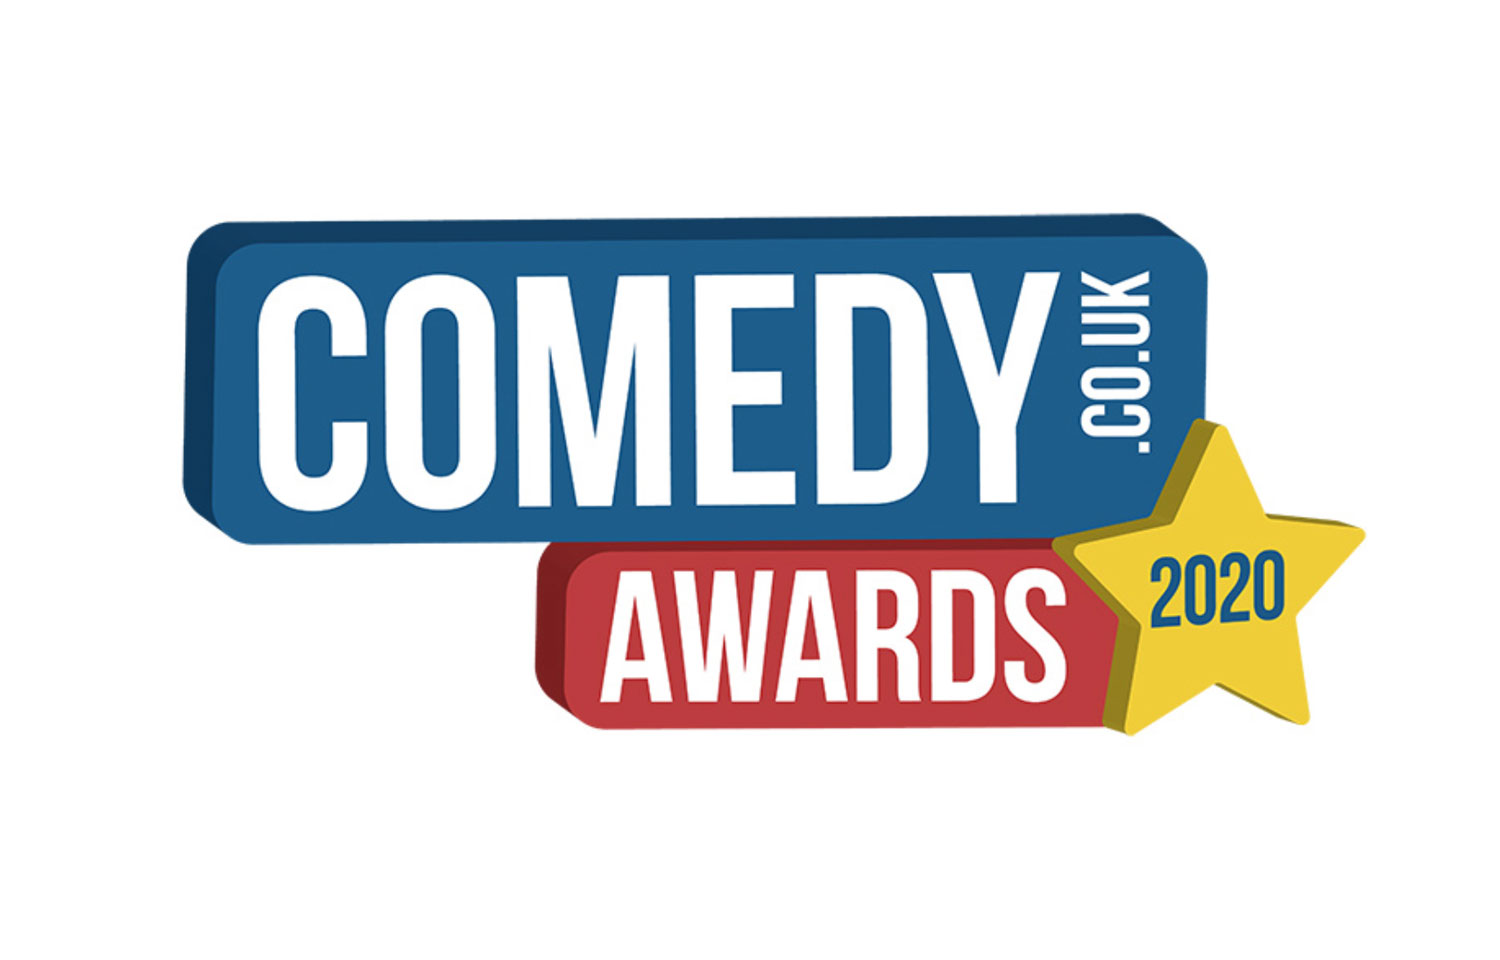 VOTING FOR THE COMEDY.CO.UK 2020 AWARDS IS NOW OPEN